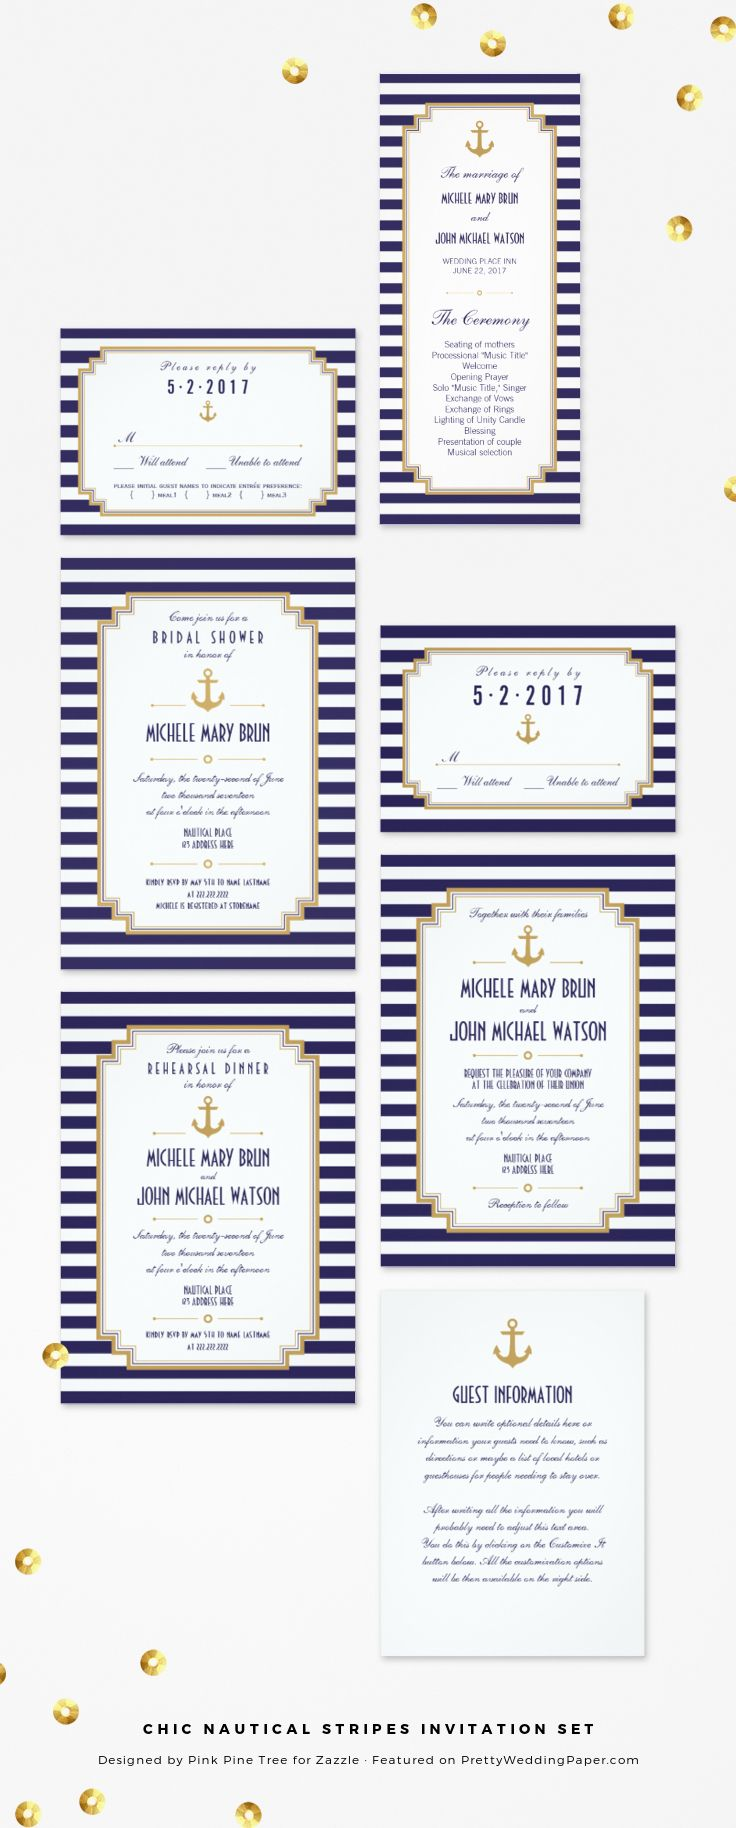 Chic Nautical Stripes Navy Wedding Invitation Collection Designed By